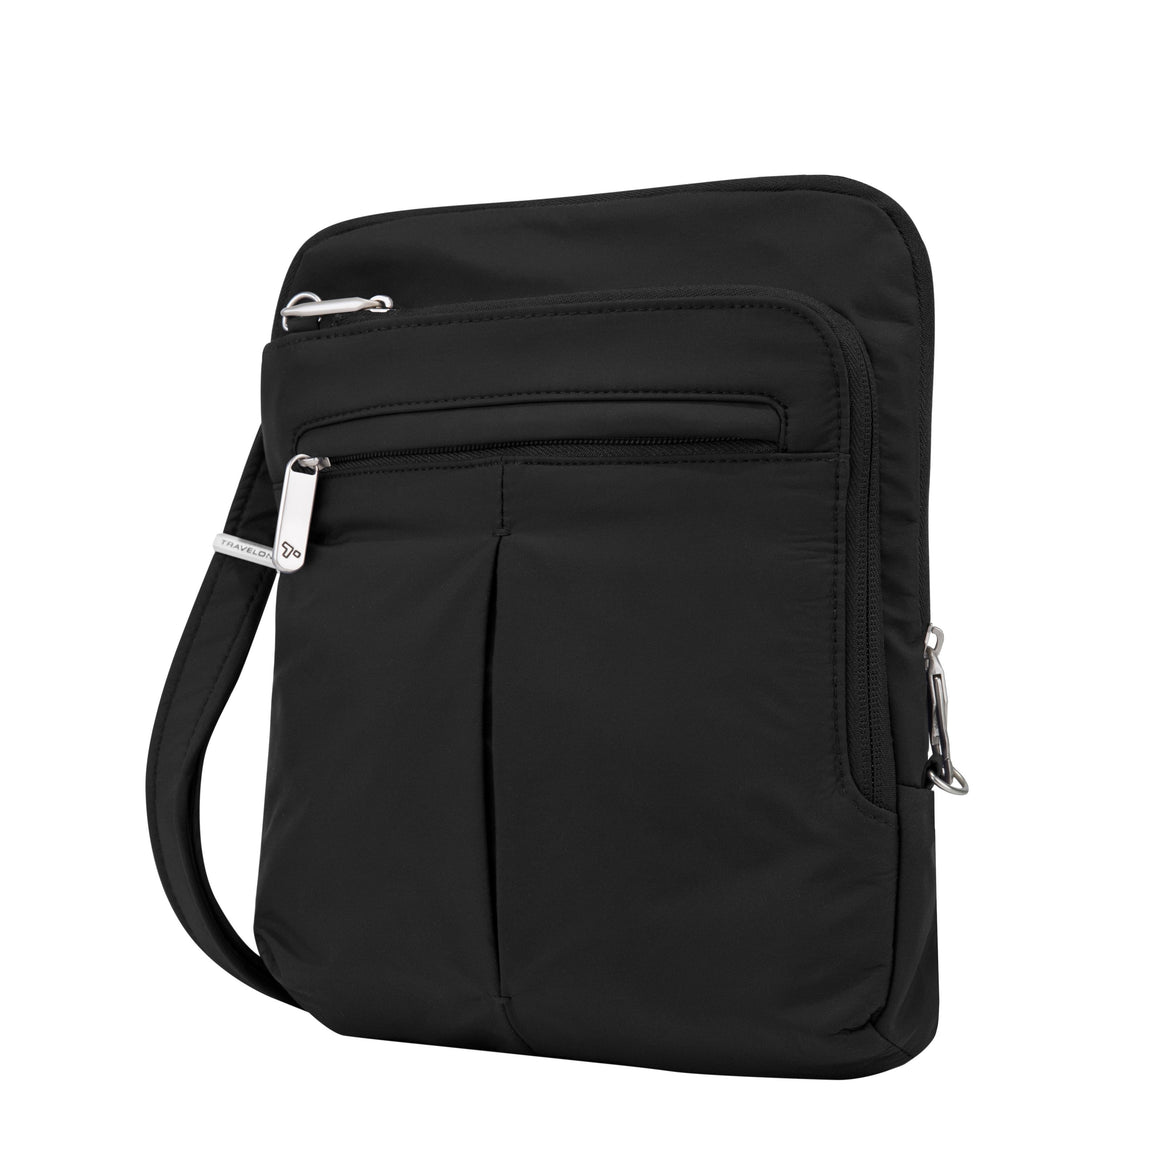 Travelon Classic Light Slim Bag Shouder Bag Black